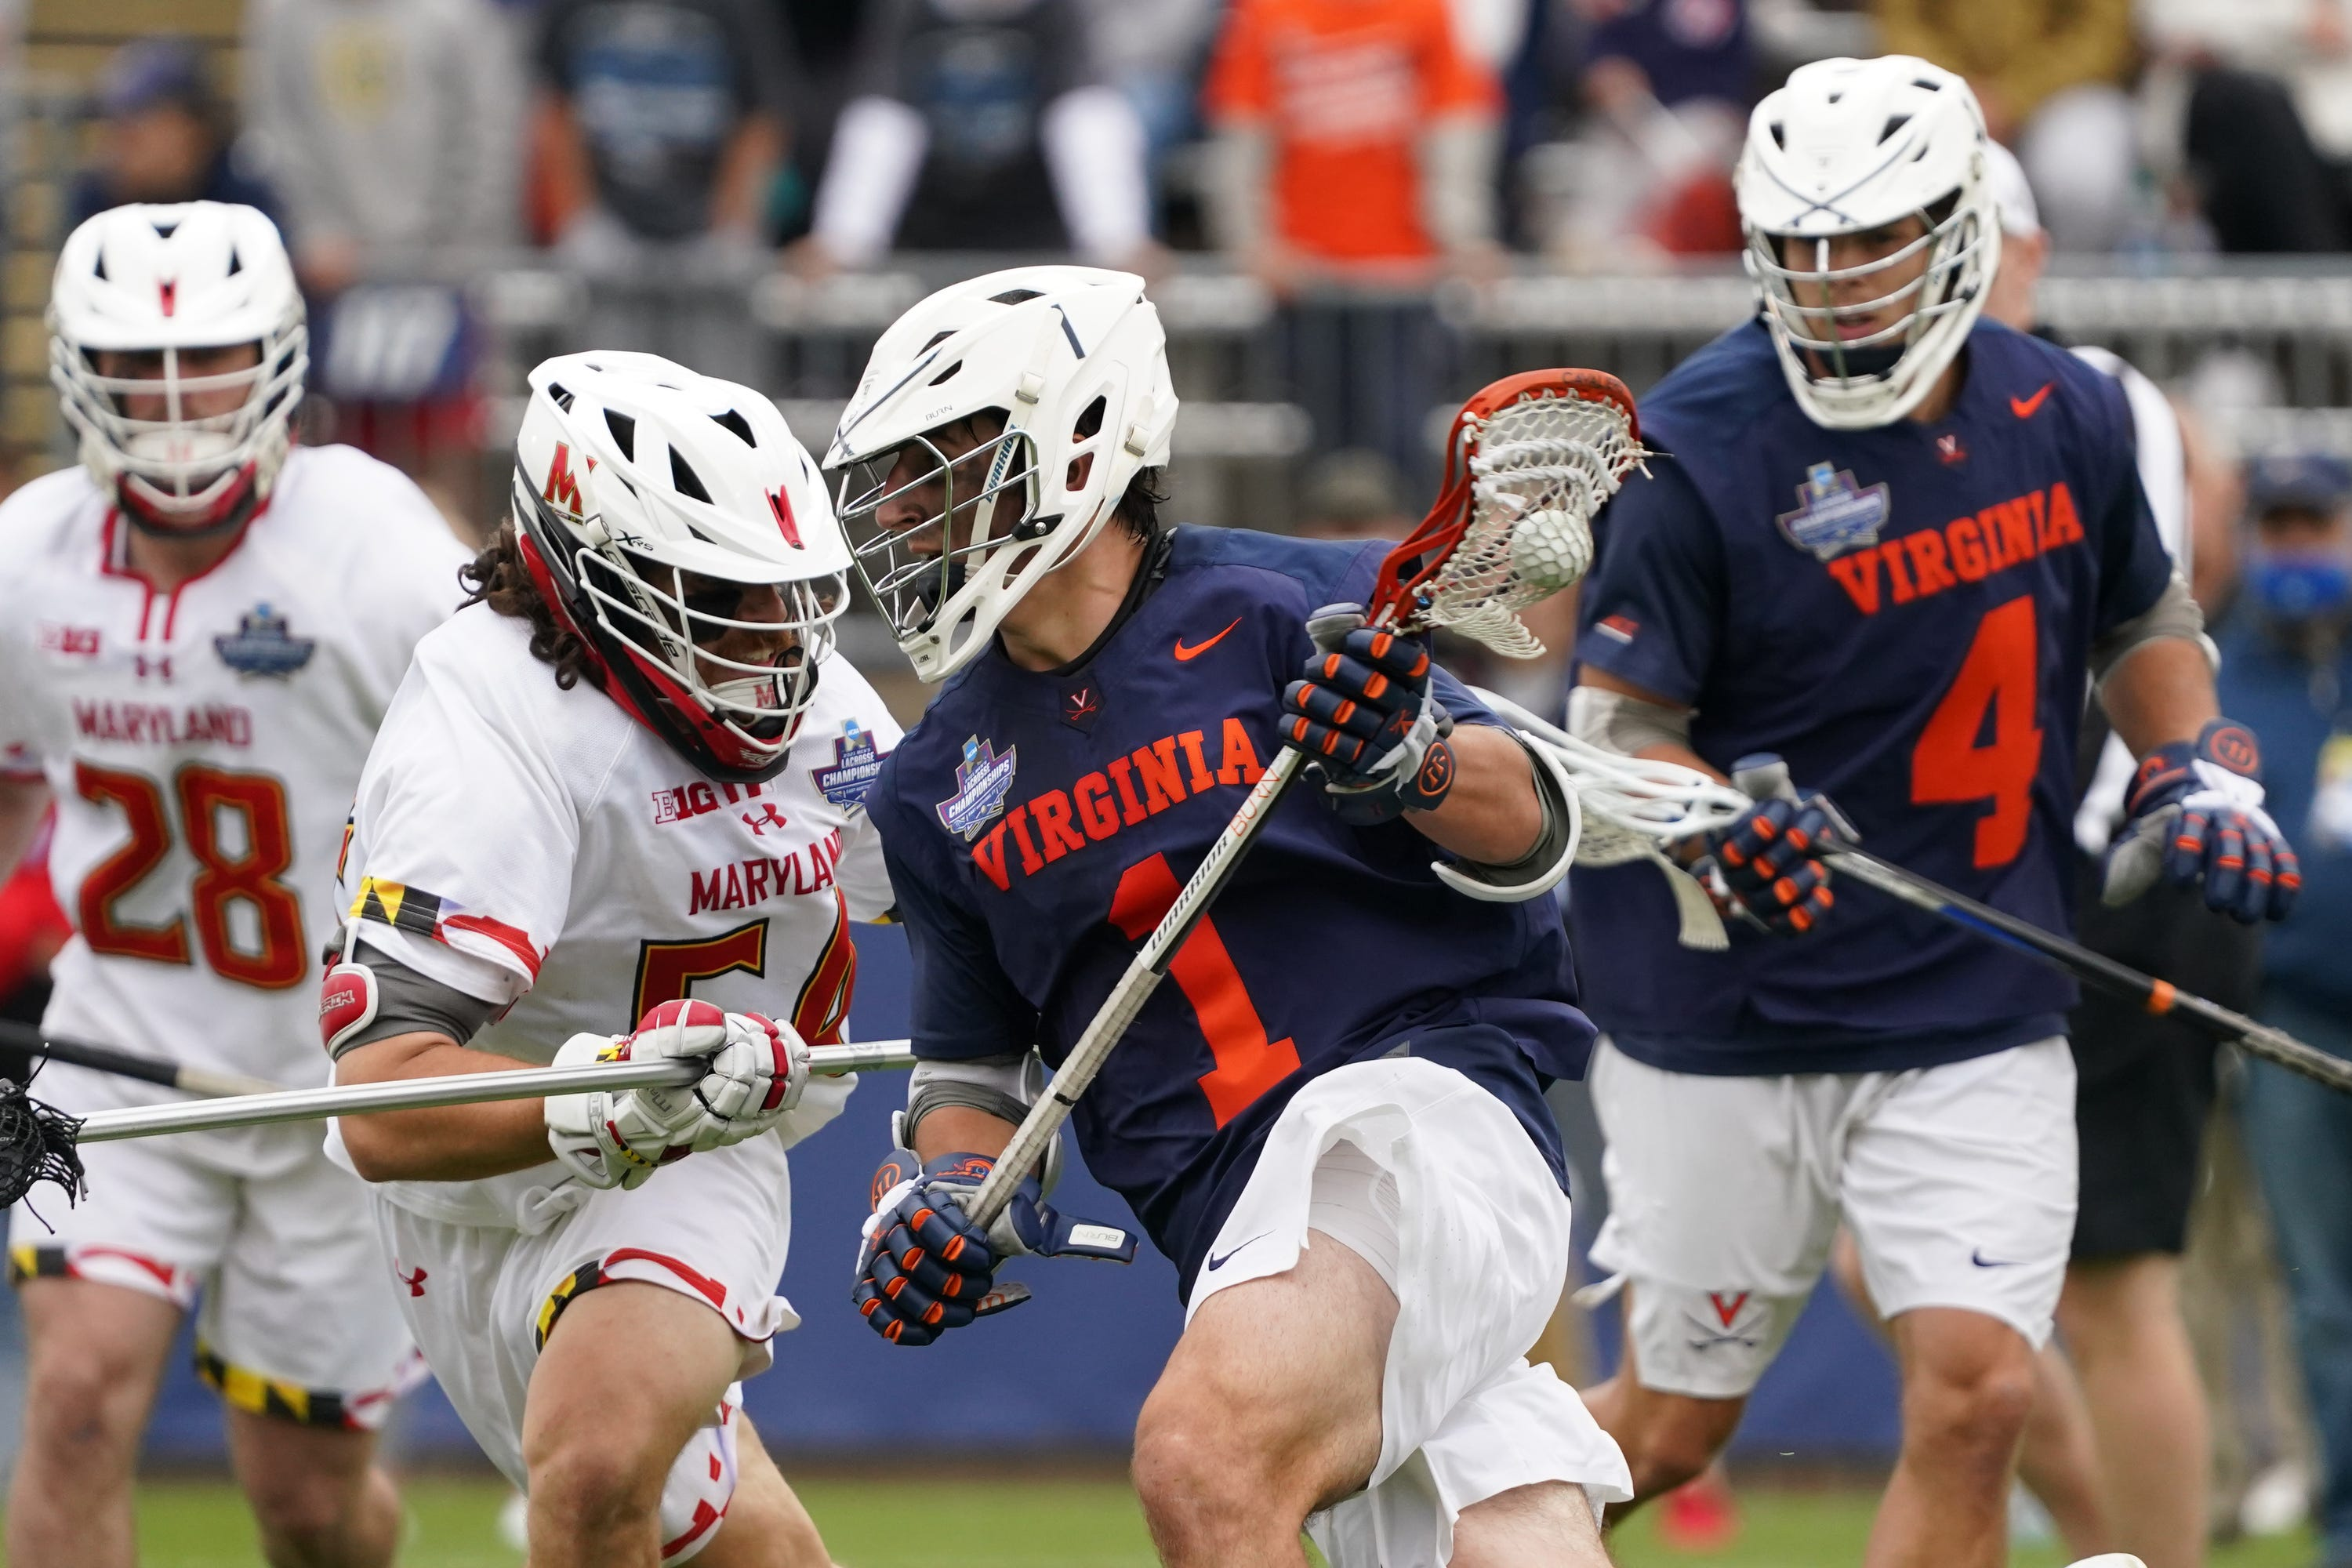 Virginia hangs on for wild win over Maryland to repeat as NCAA men's lacrosse champions